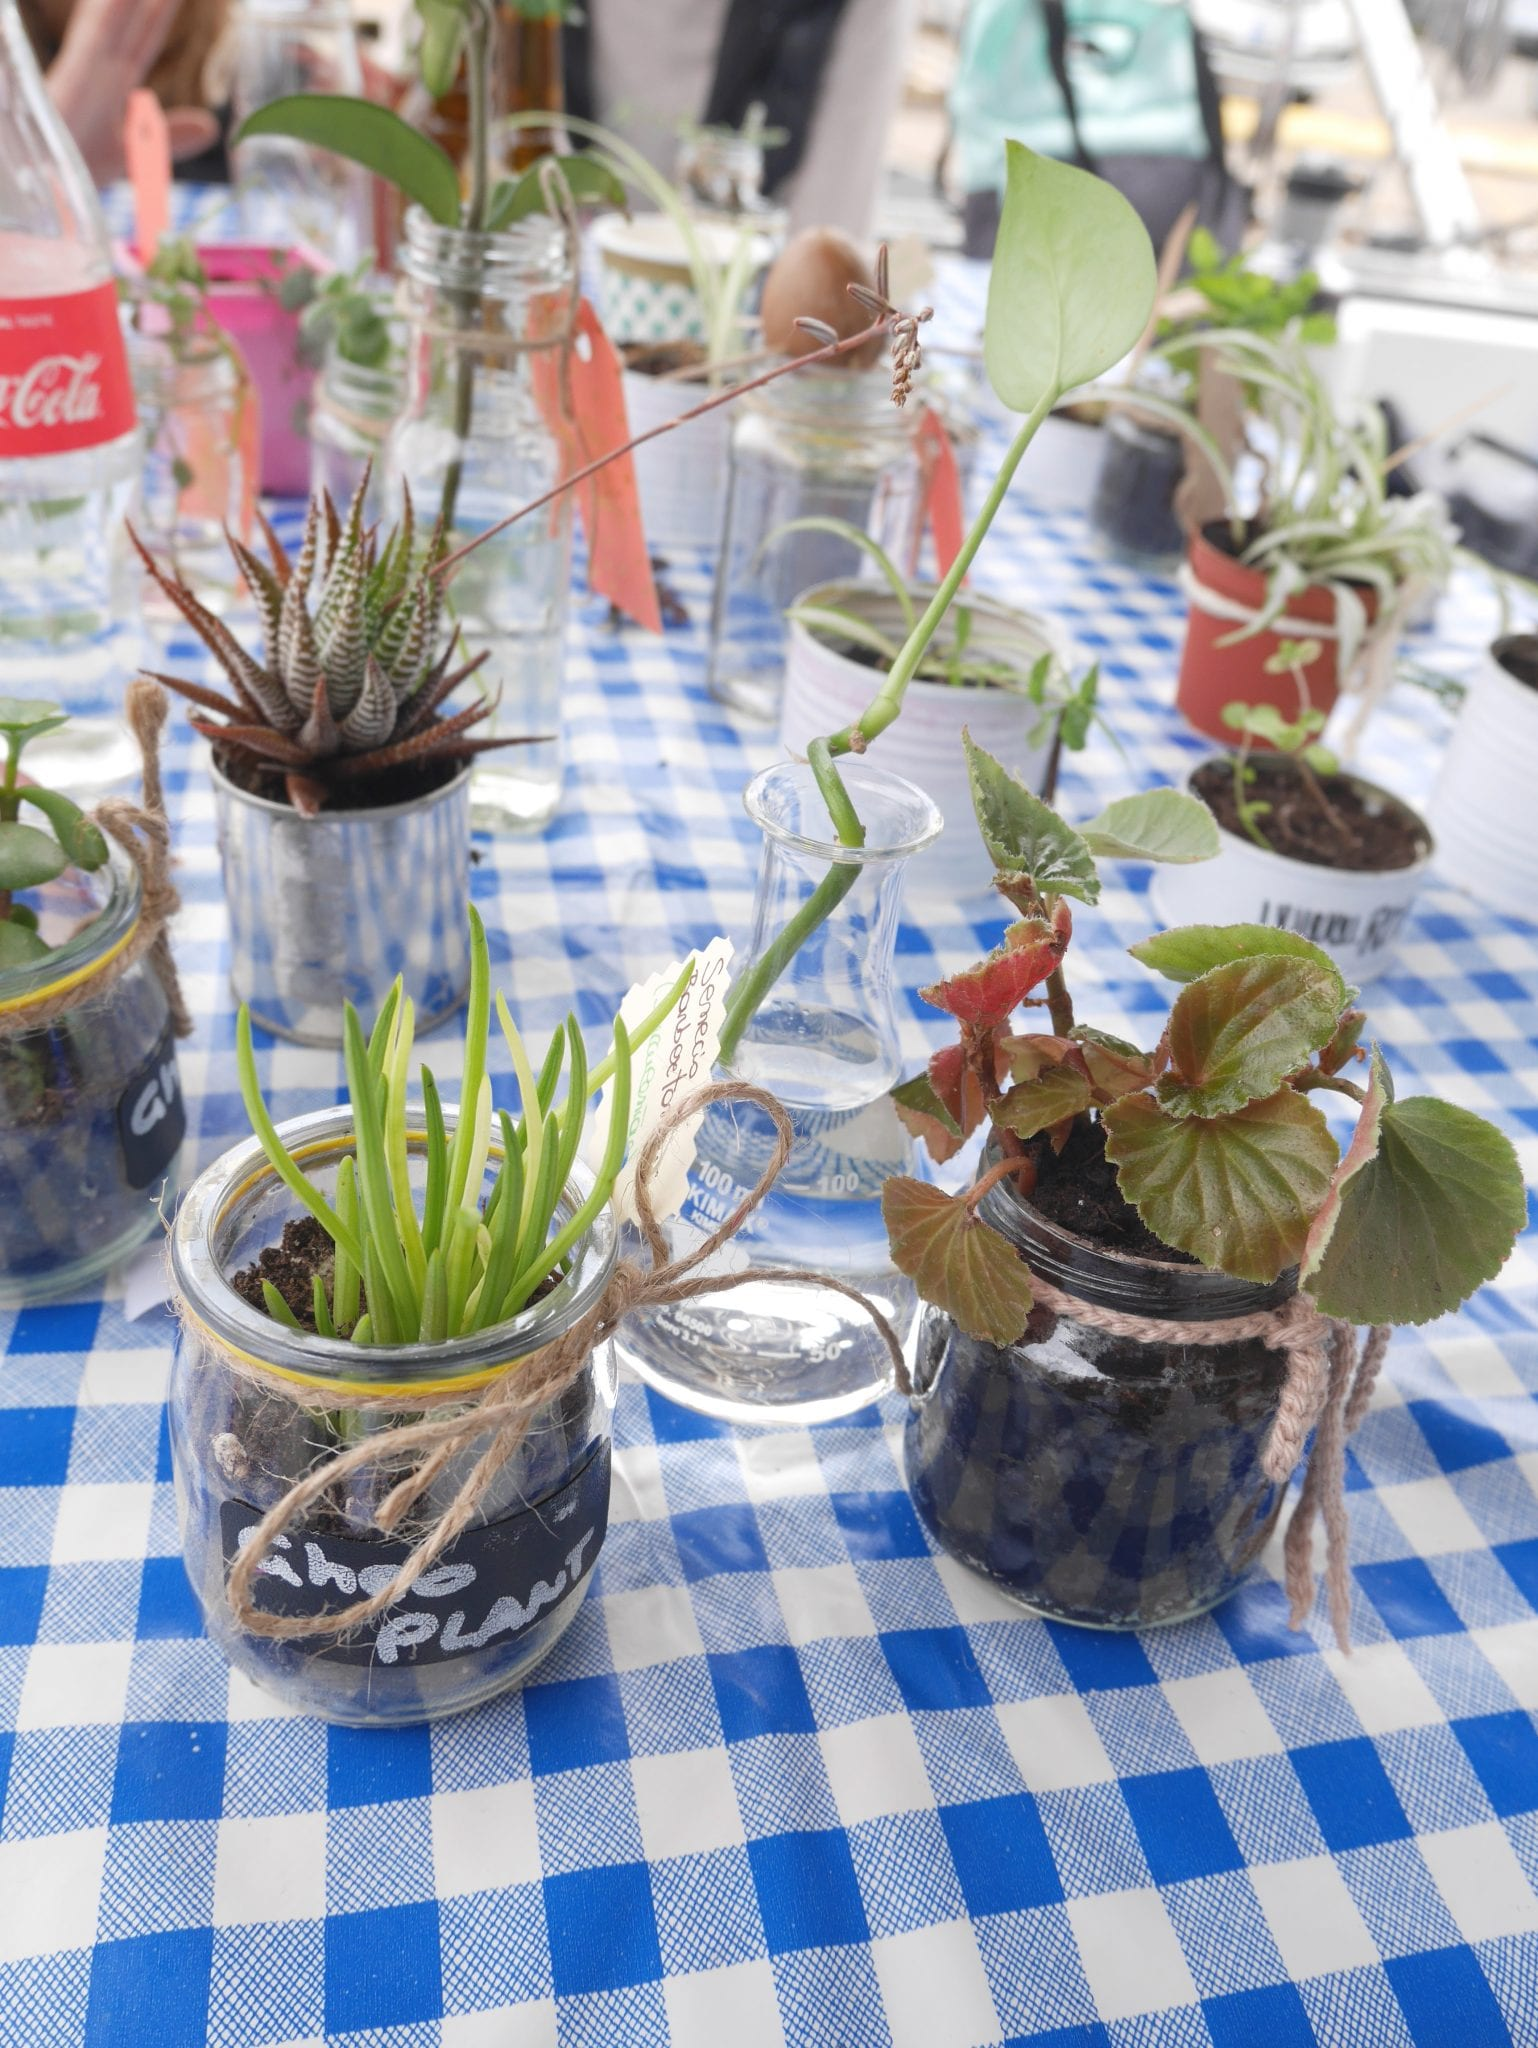 Plant swap on board 2 - Le Plume